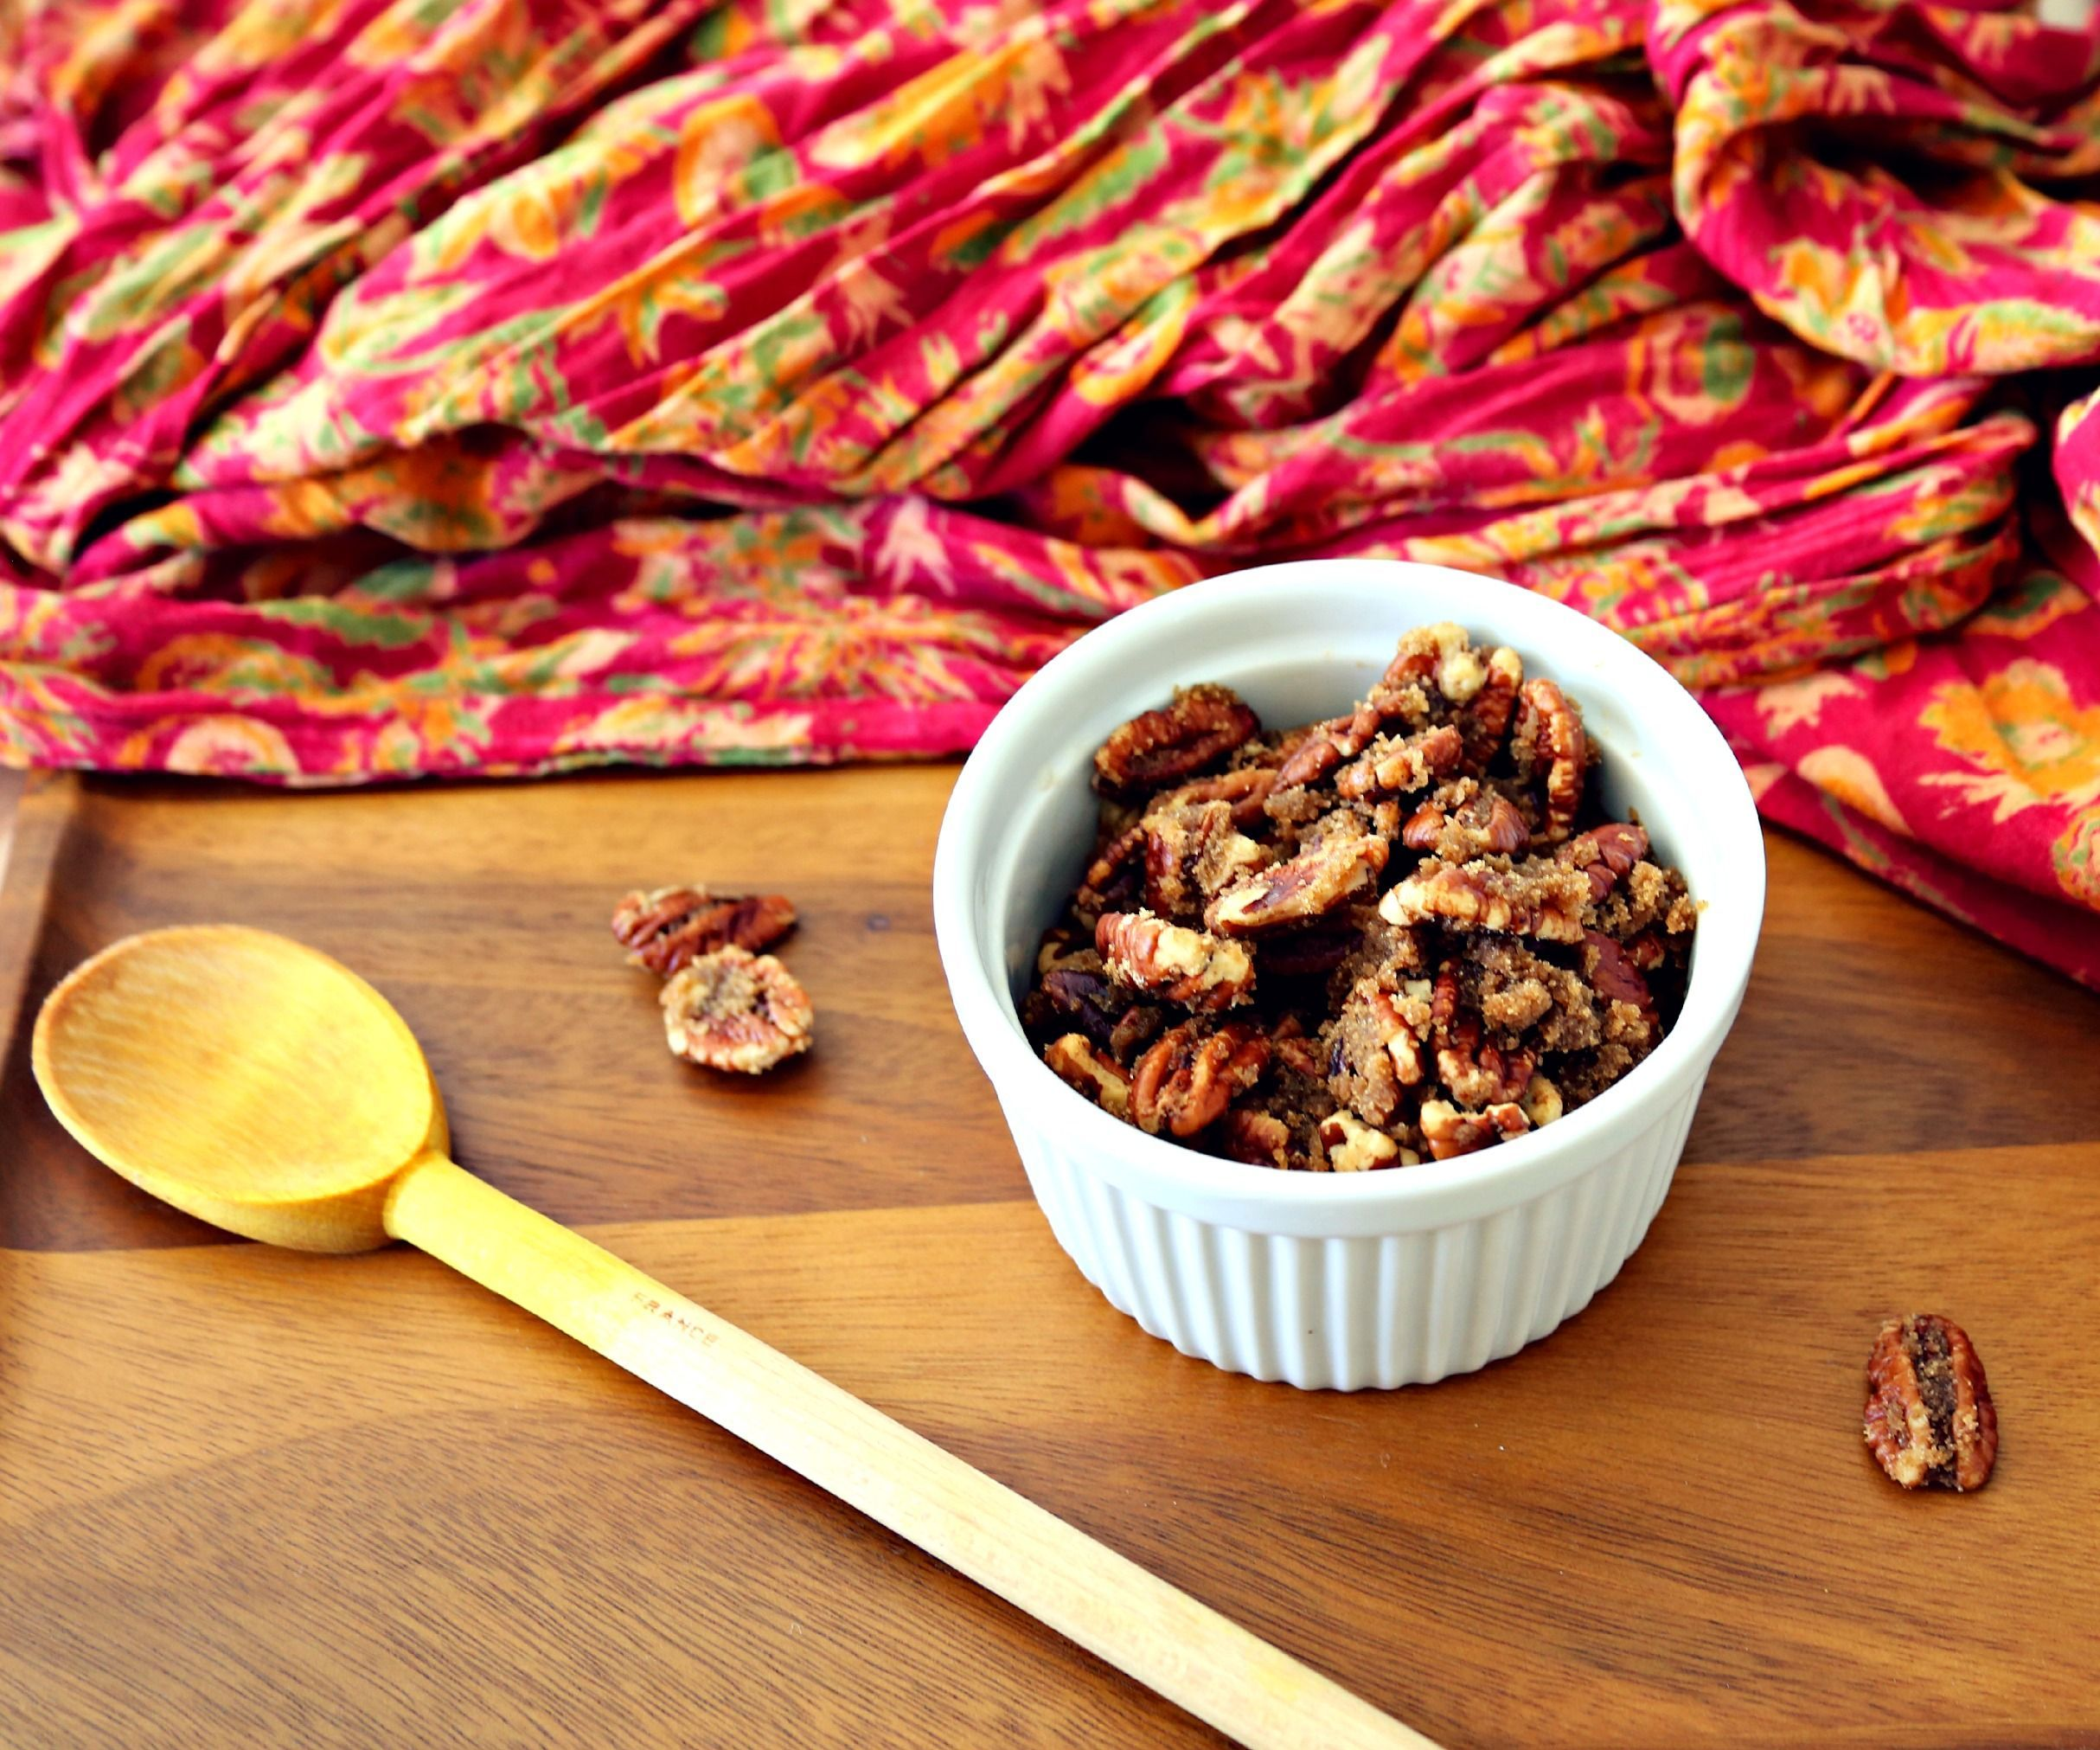 How to Candy Pecans